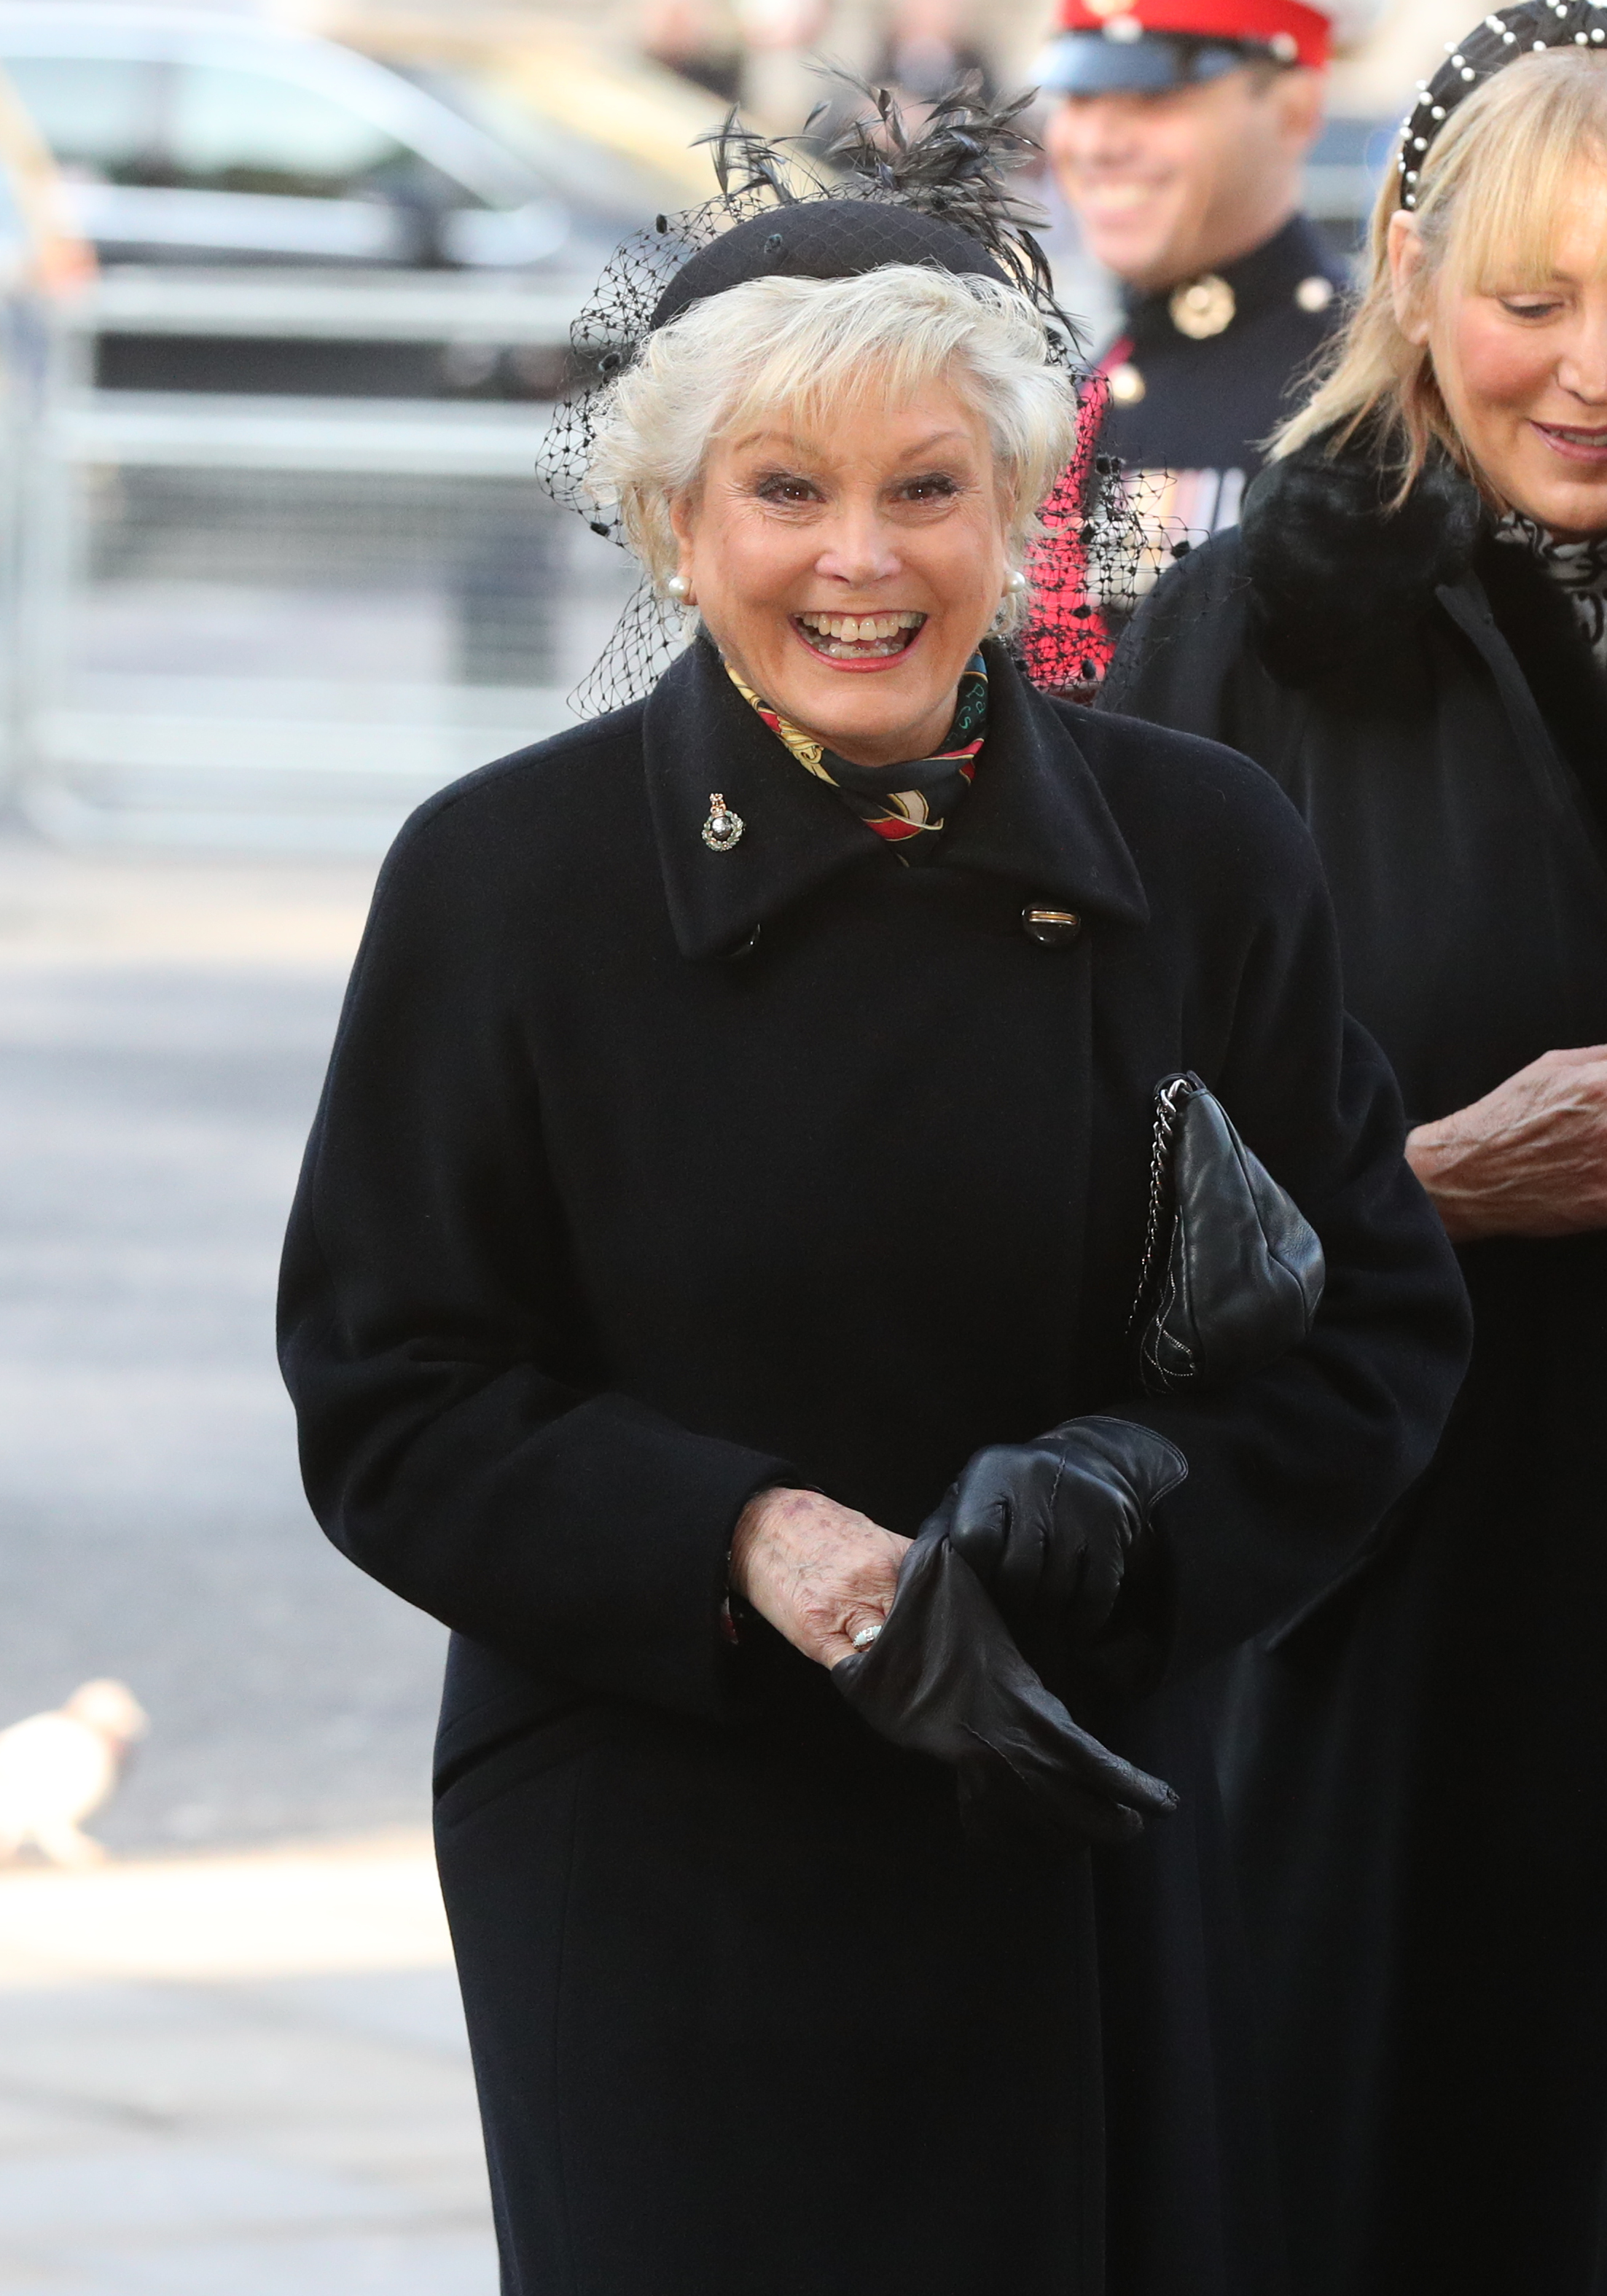 Angela Rippon arrives for a service of thanksgiving for the life and work of Sir Donald Gosling at Westminster Abbey in London.